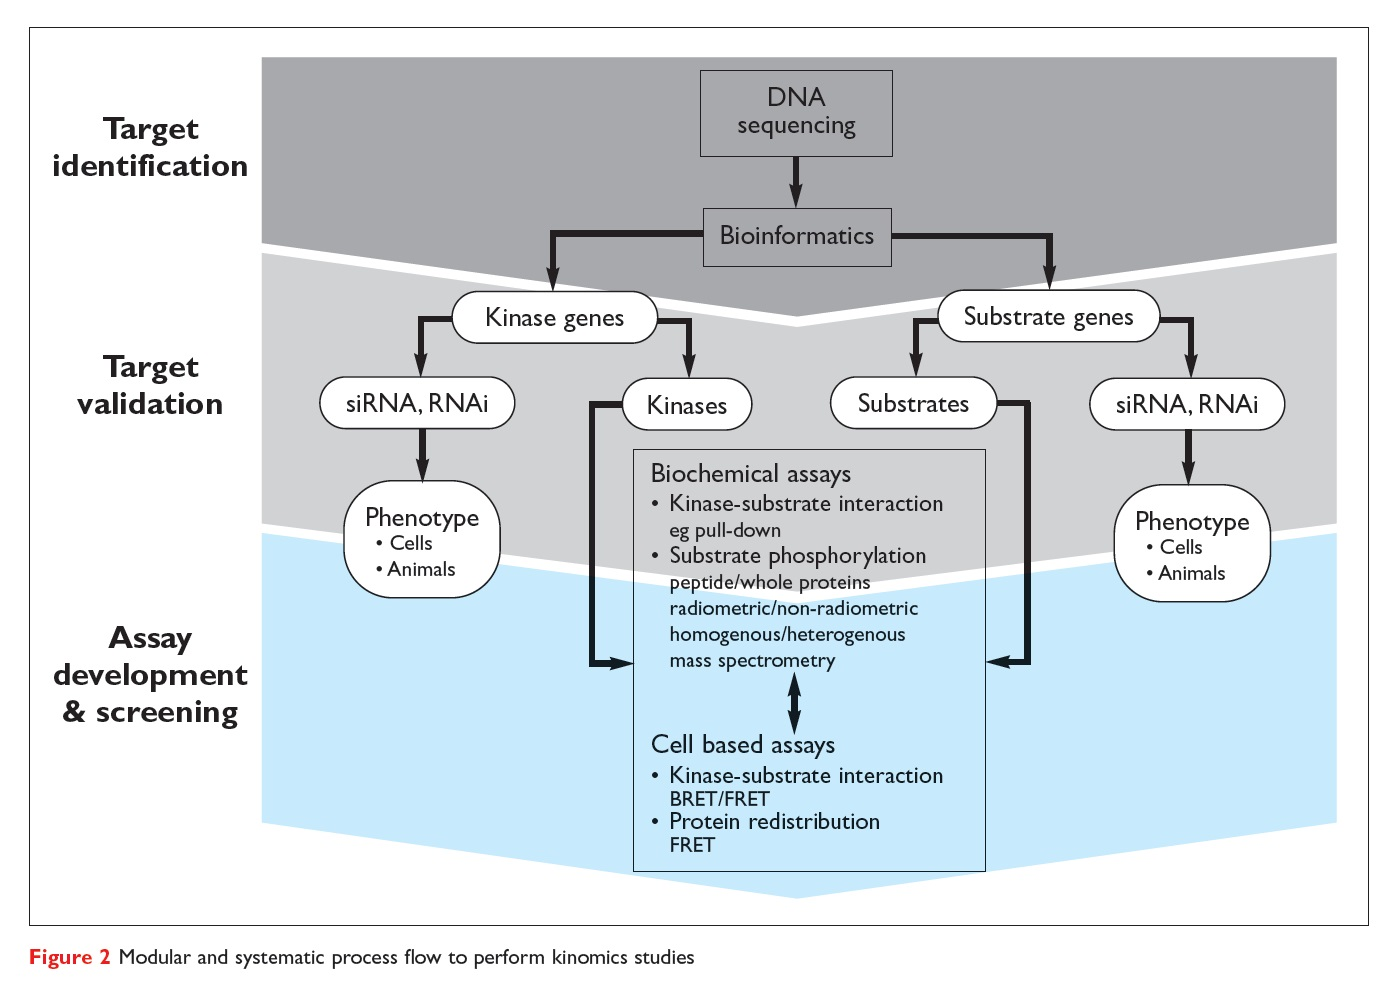 Figure 2 Modular and systematic process flow to perform kinomics studies